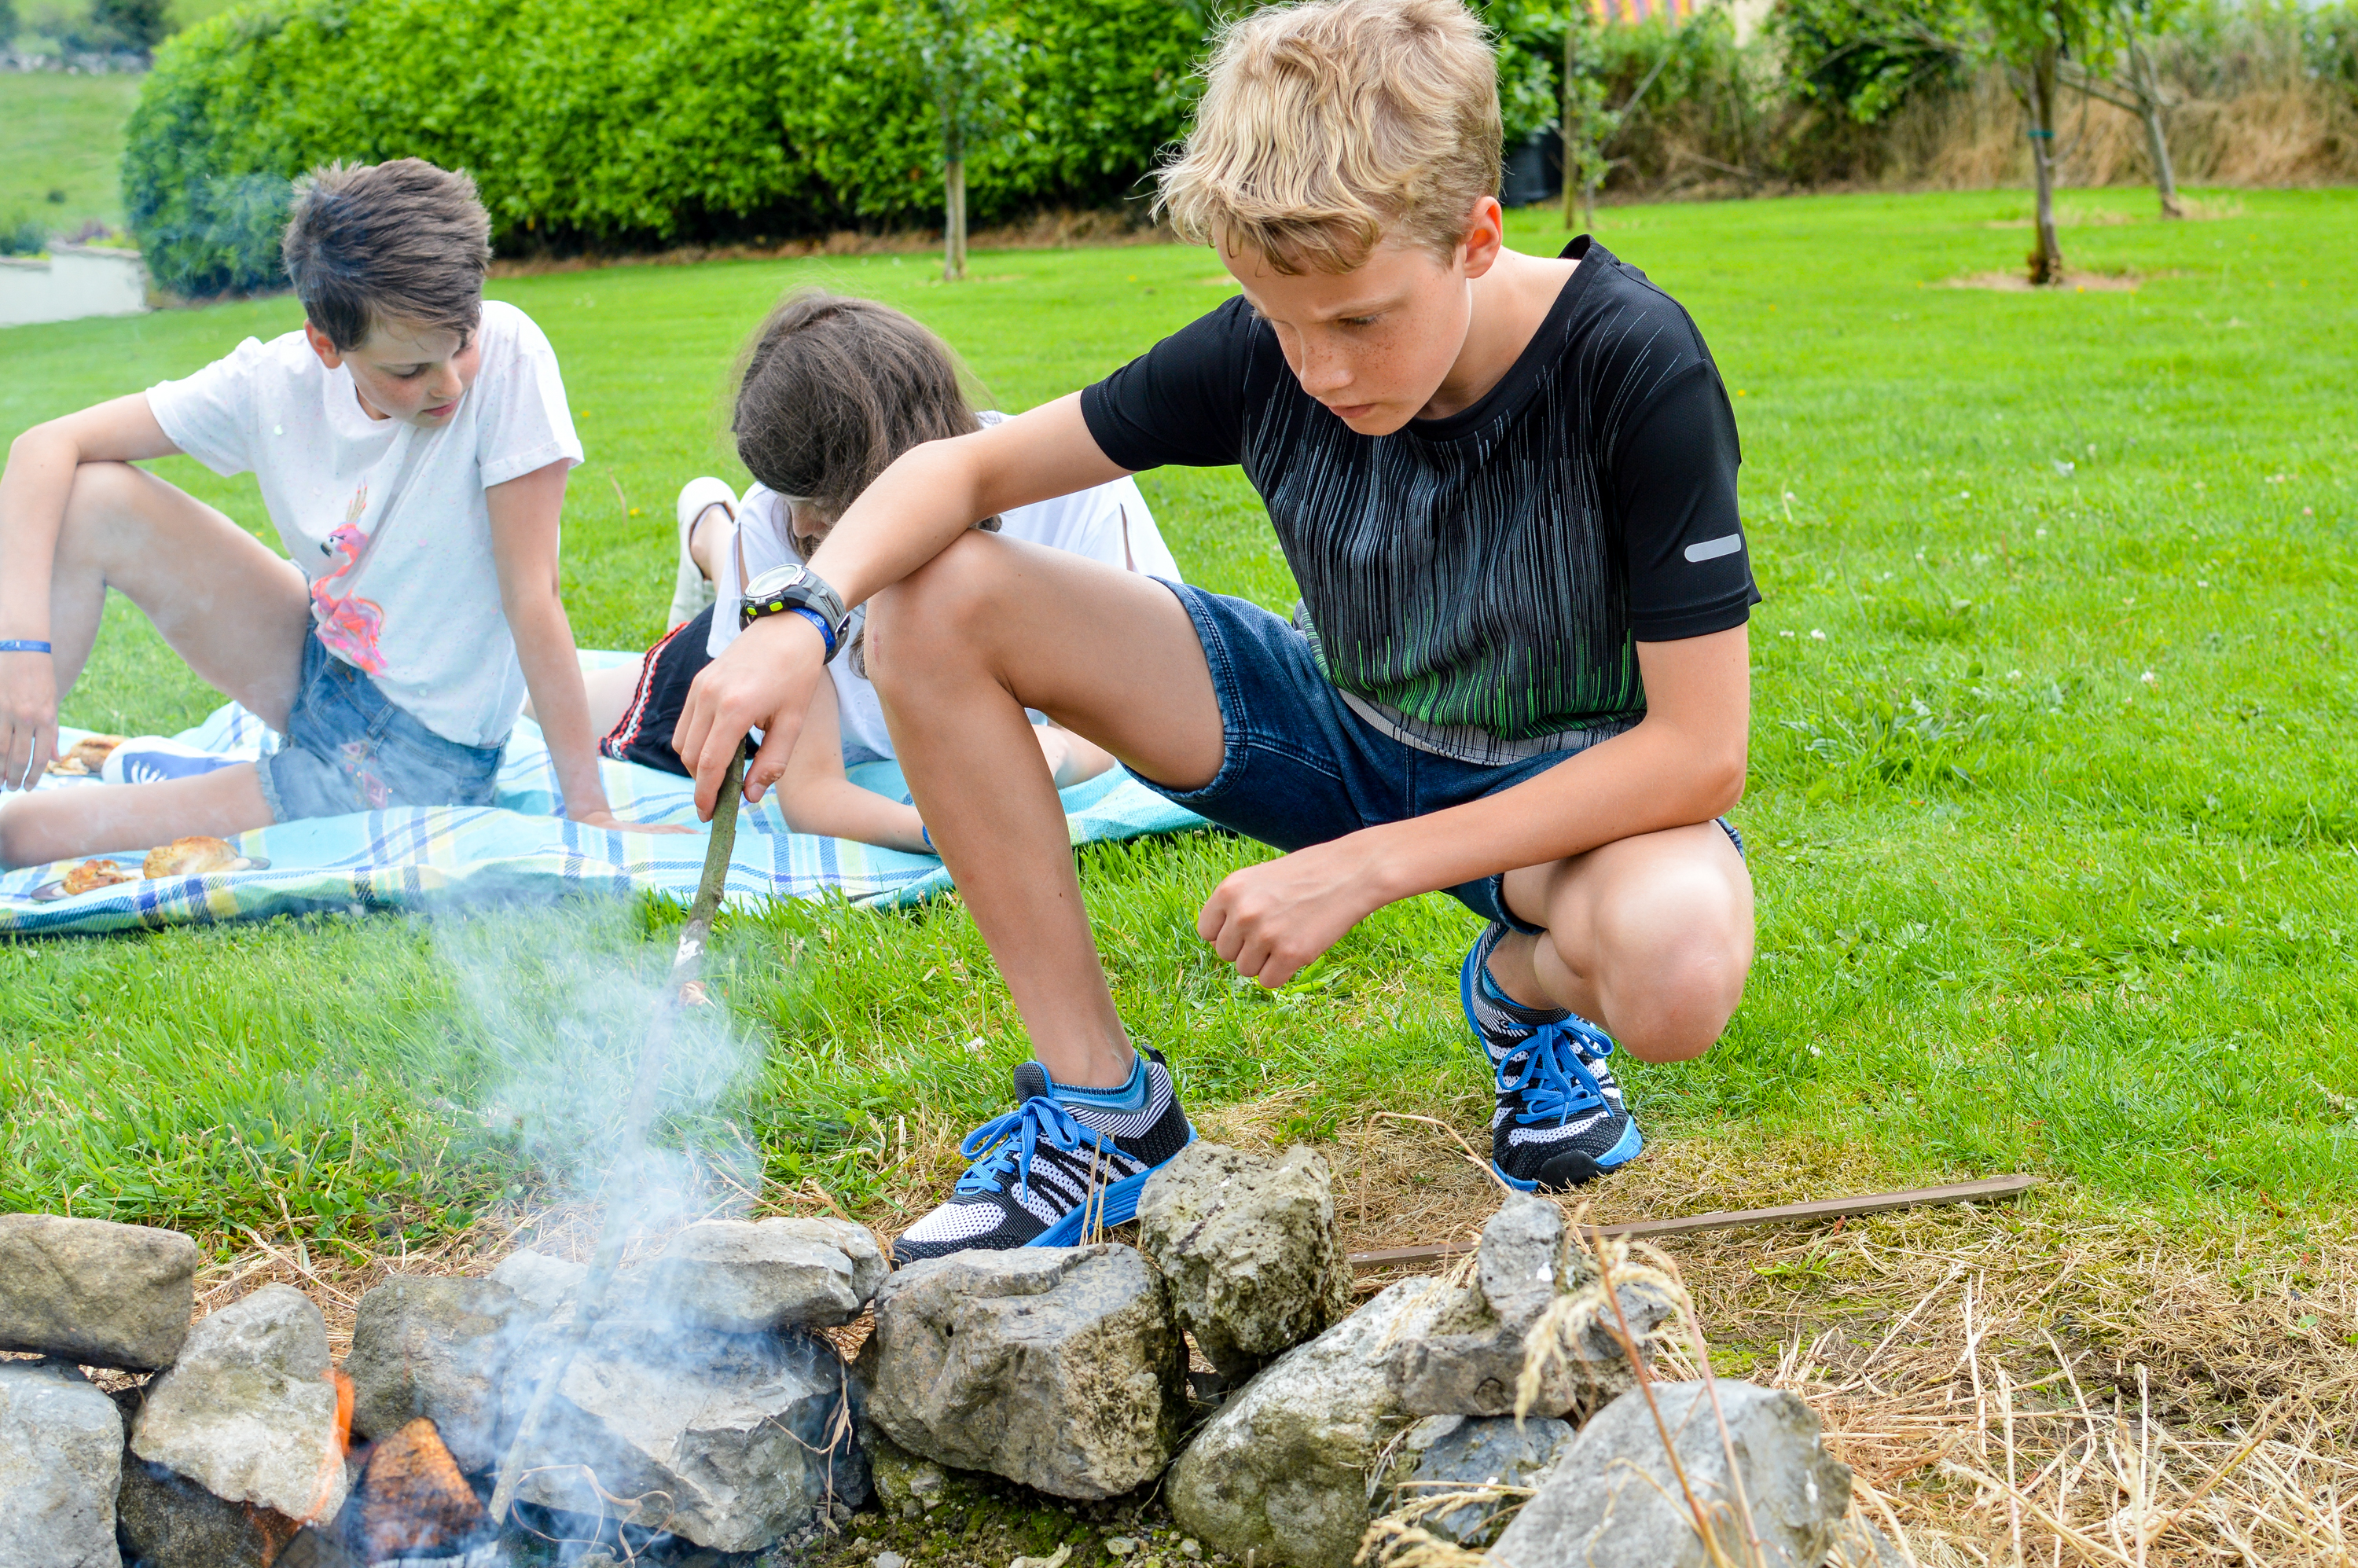 Enjoying a summer camp fire wearing their Marks and Spencer t-shirts and shorts